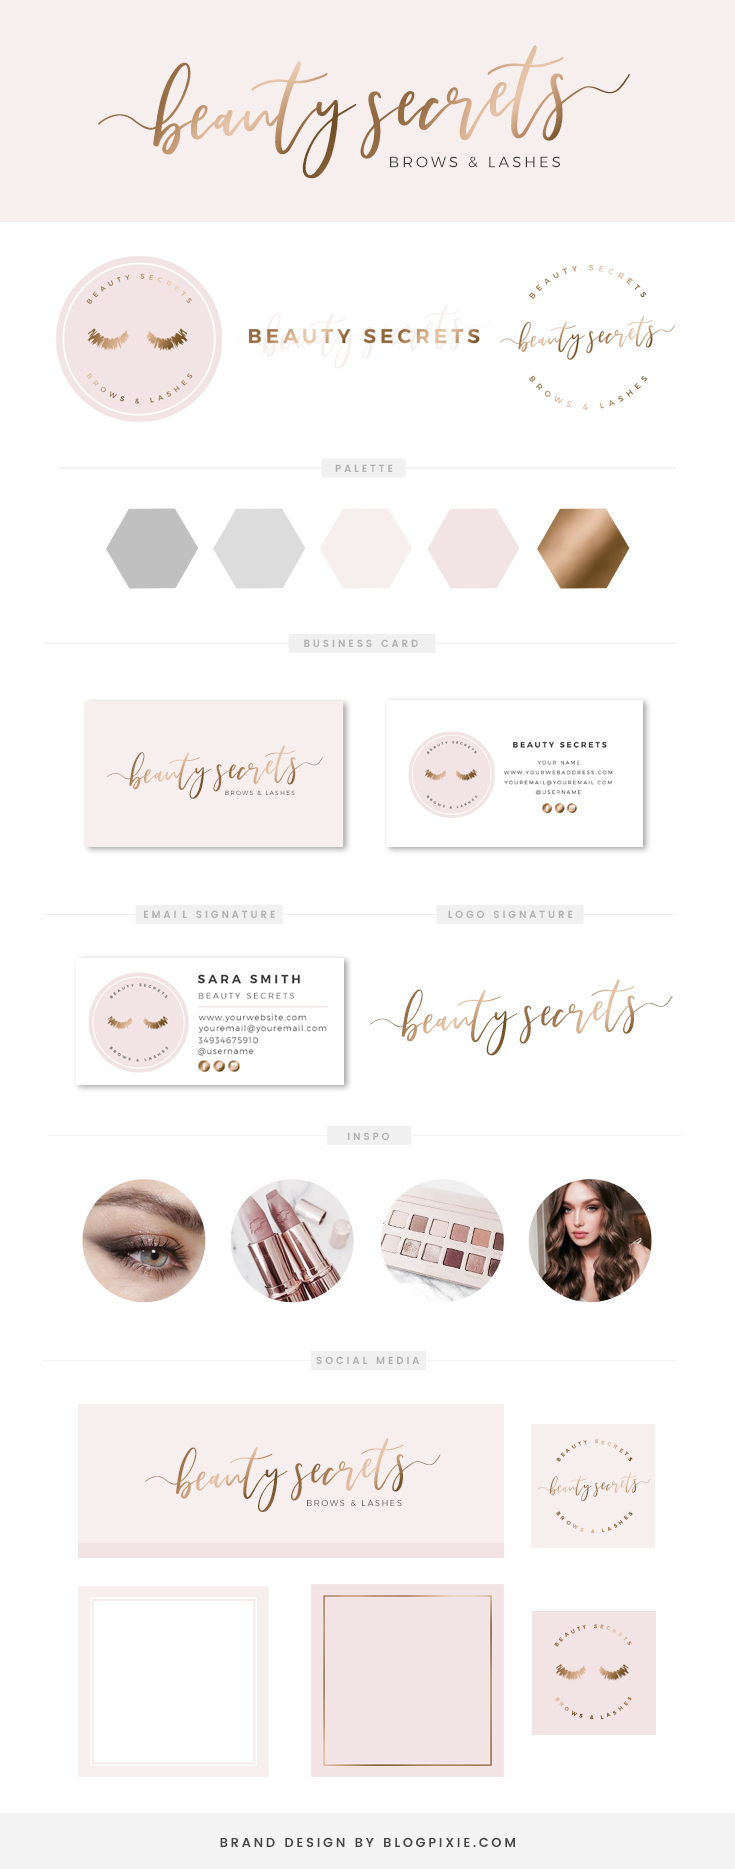 Rose gold copper logo design and branding ♡ Beauty brand